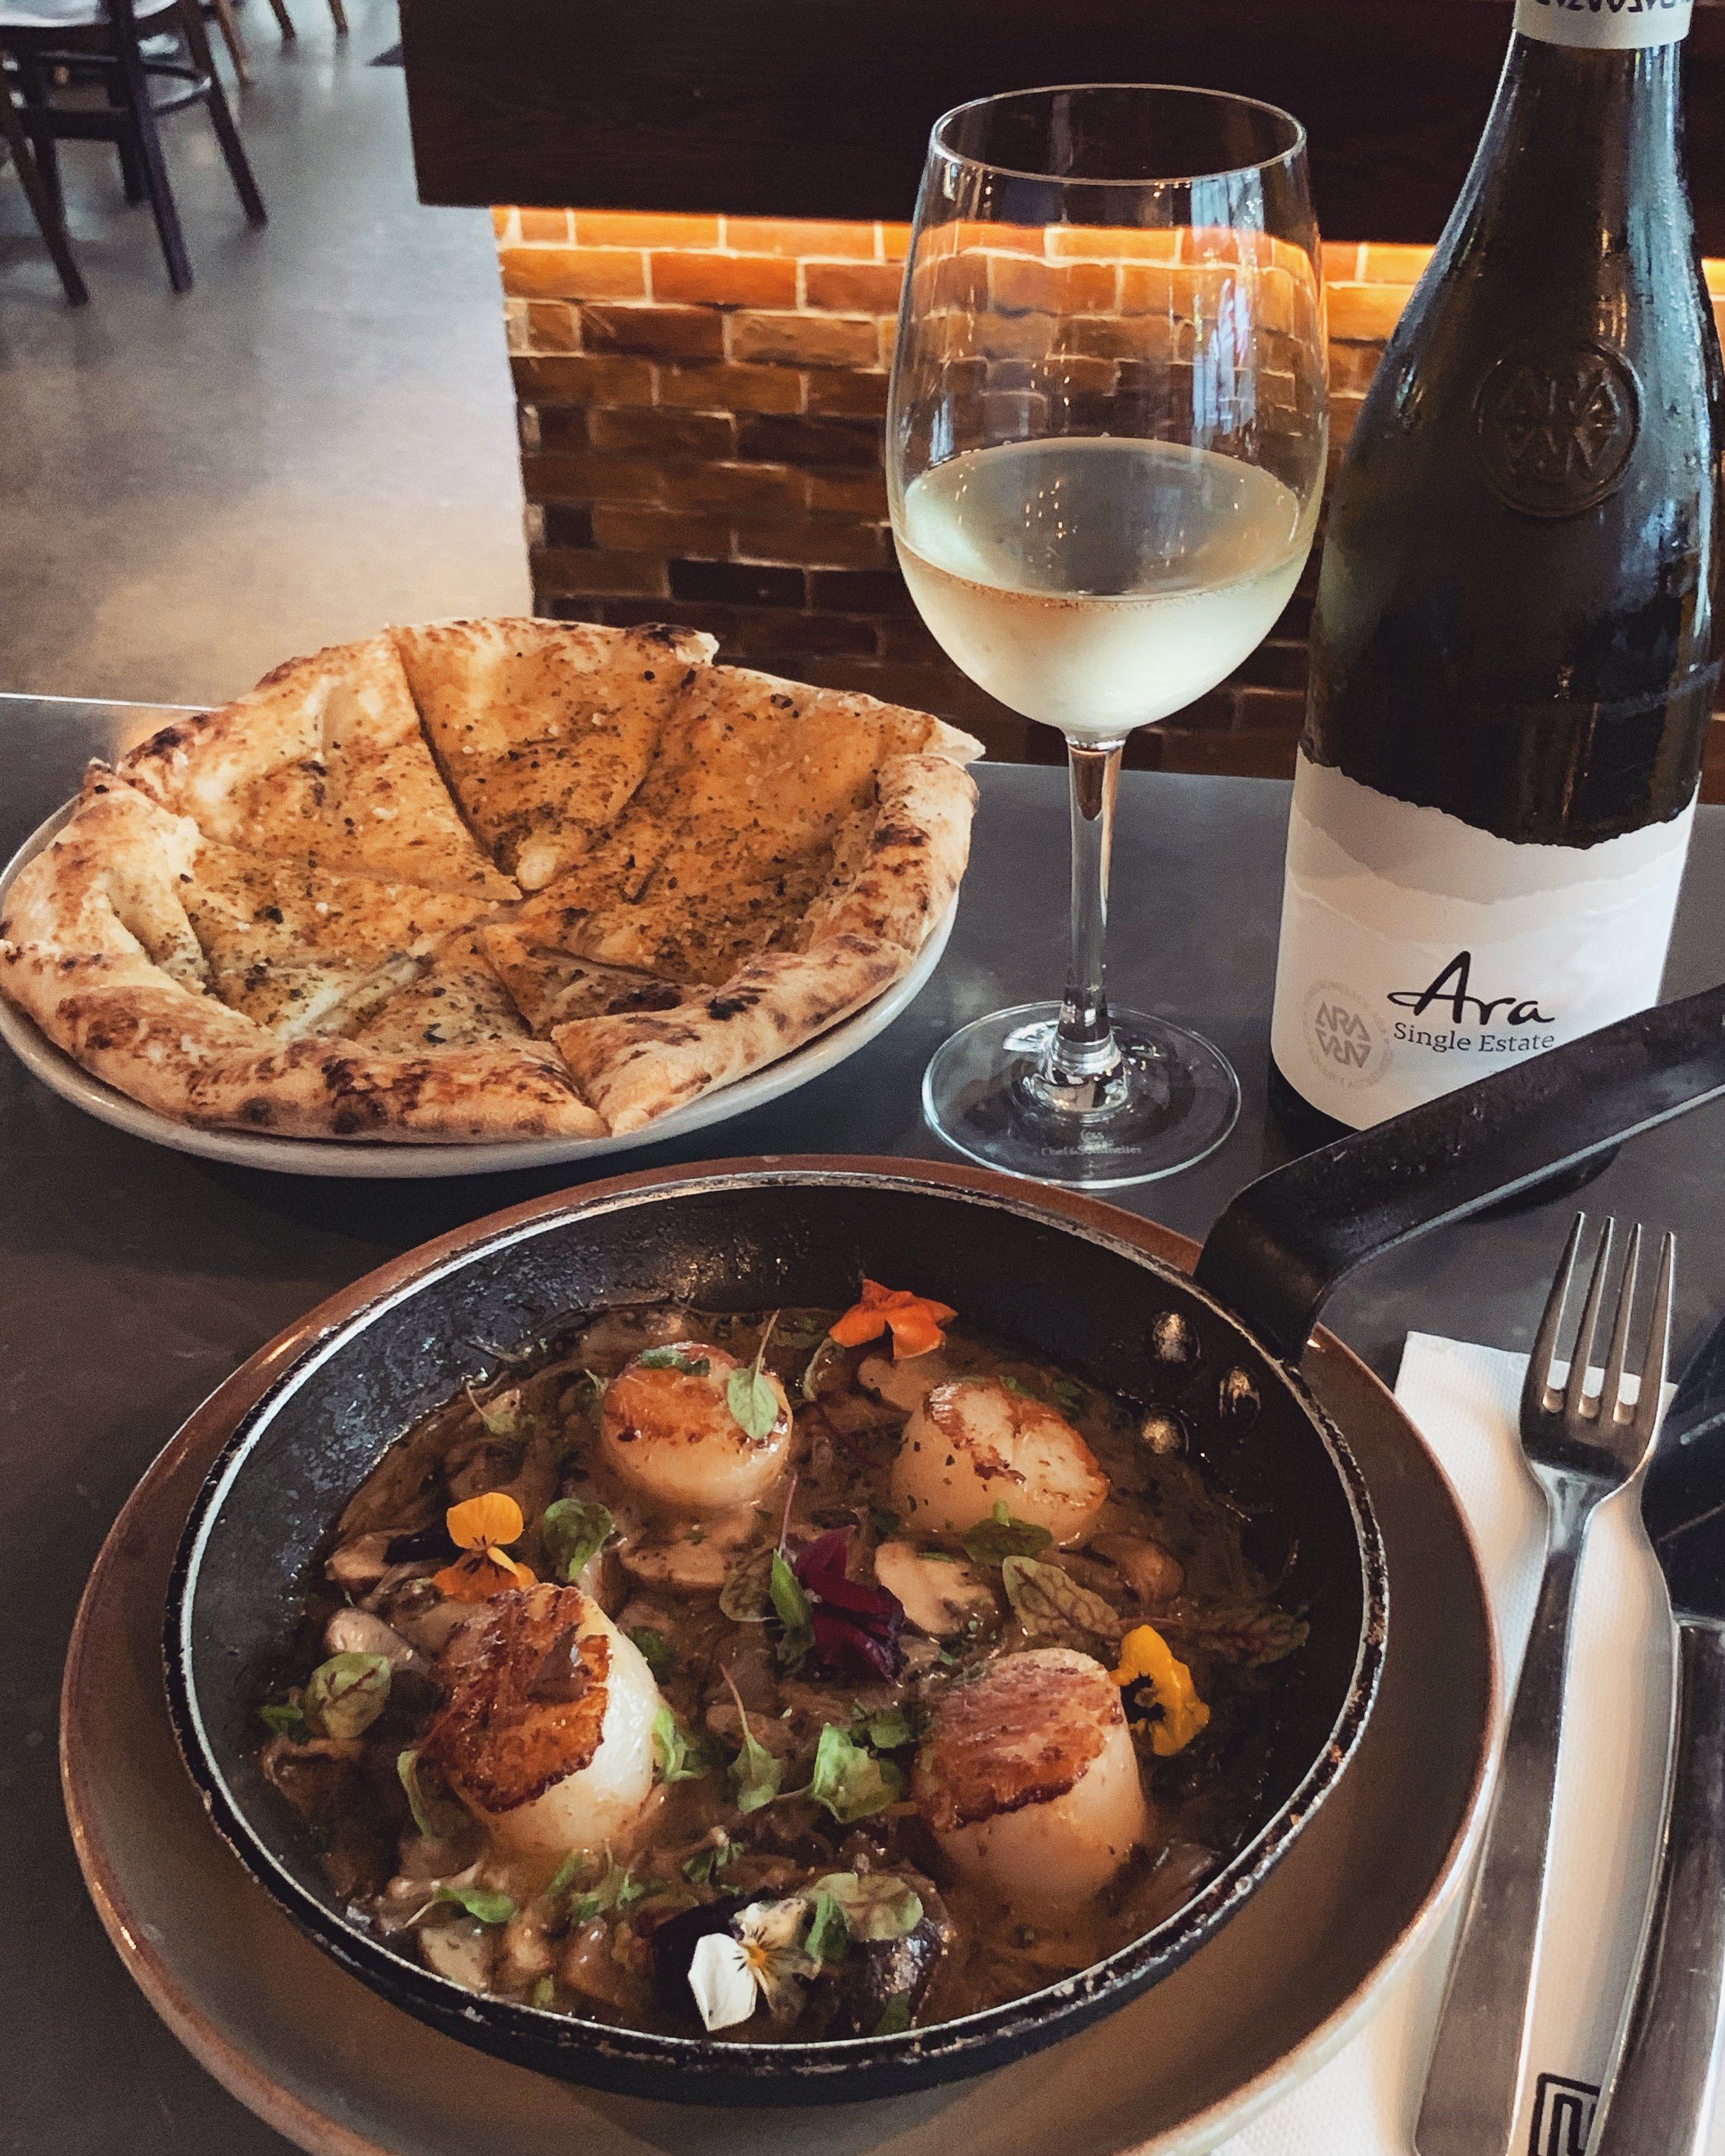 12-18 June - ~ C a p p a s a n t a ~Grilled Japanese scallops with a quartet of shiitake, enoki, porcini, button mushrooms and a hint of chilli! Weekly special, June 13-18.~Recommended with a glass of Ara 'Single Estate' Sauvignon Blanc.~